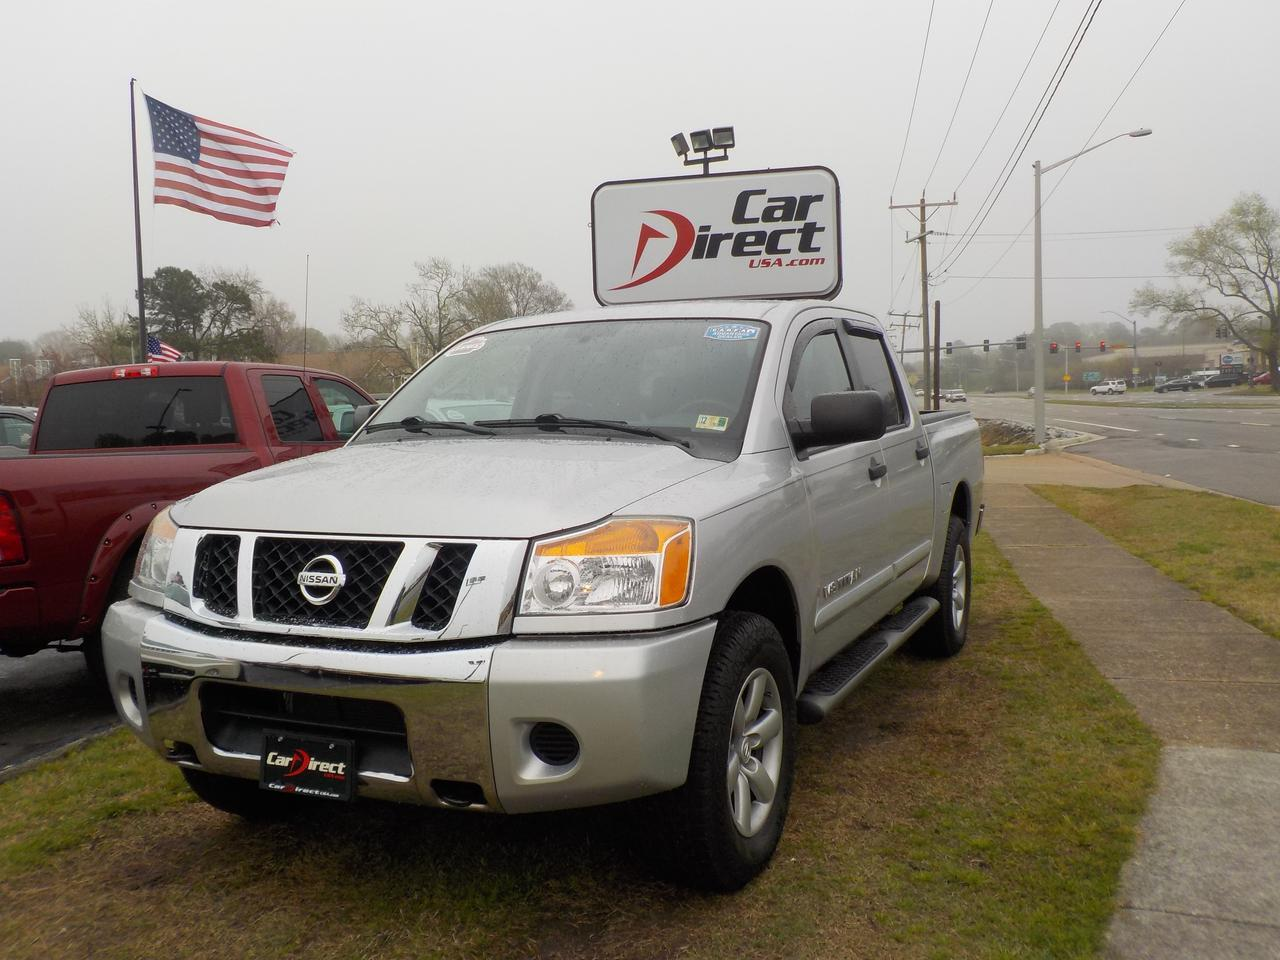 2010 NISSAN TITAN SE 4X4, WARRANTY, BED LINER, RUNNING BOARDS, TOW PACKAGE, GREAT TRUCK FOR WORK OR PLAY!